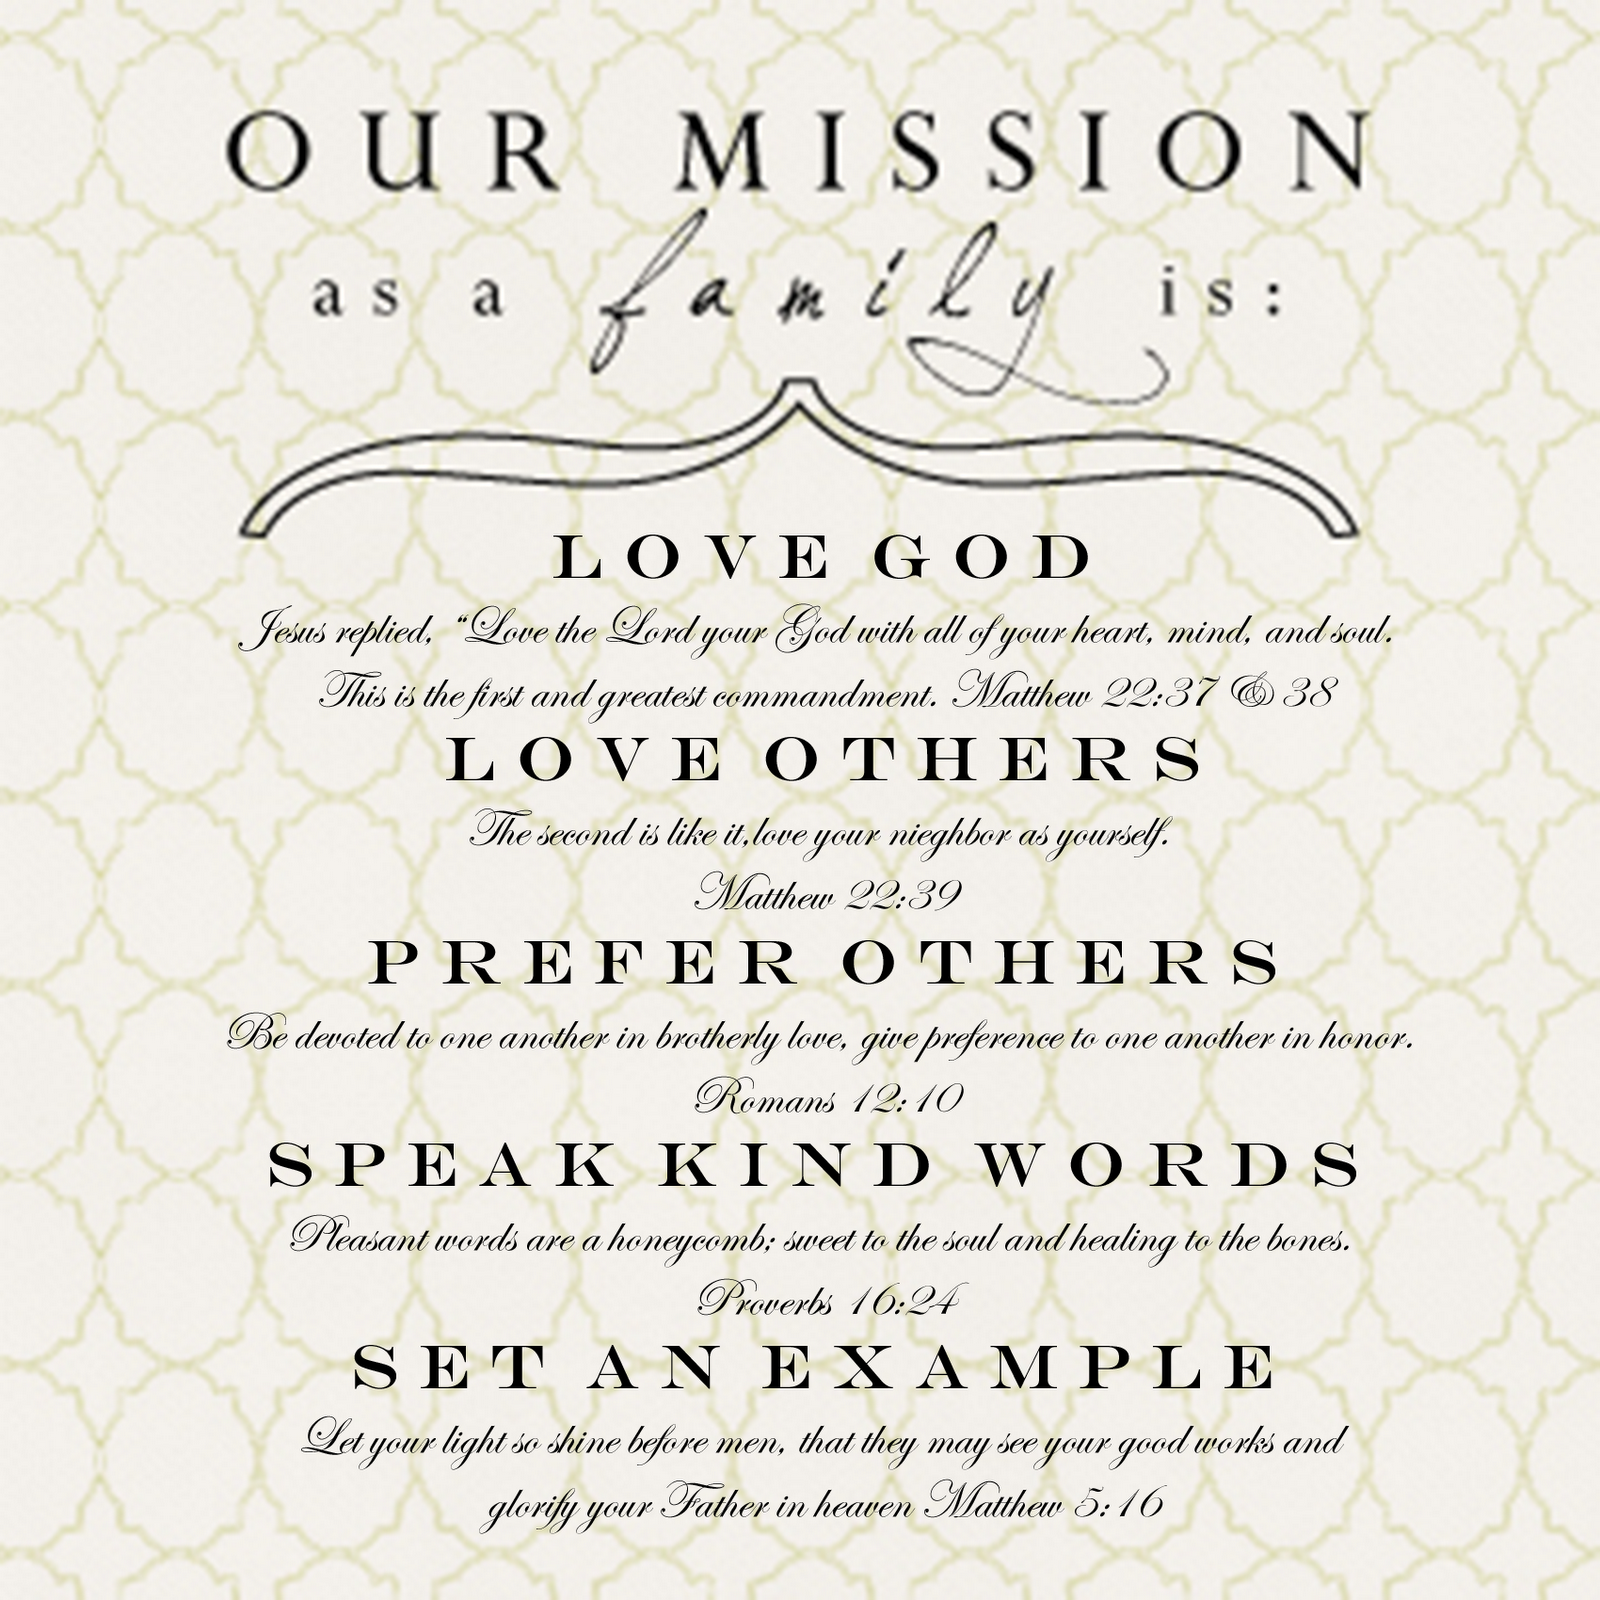 I Will Do A Family Mission Statement This Year Love This Idea For